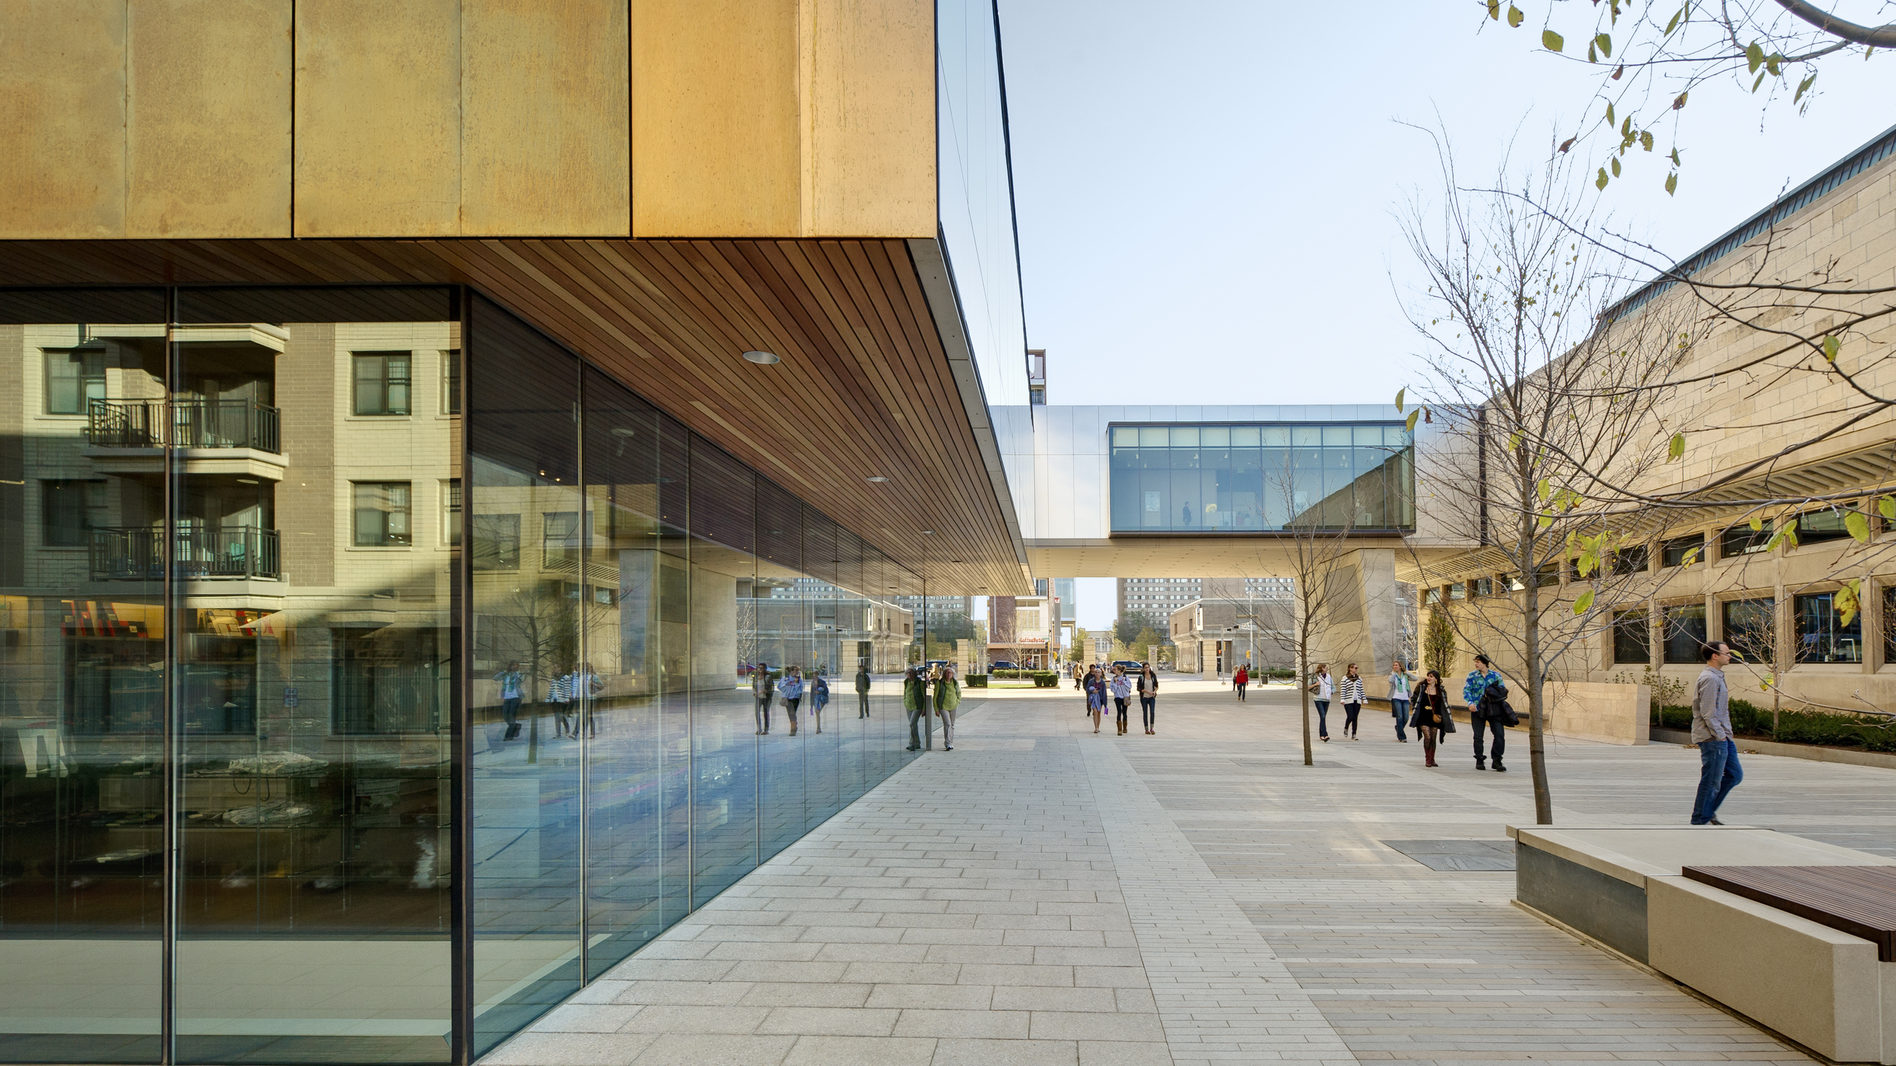 Exterior of a building focused on a walkway, where students are crossing past